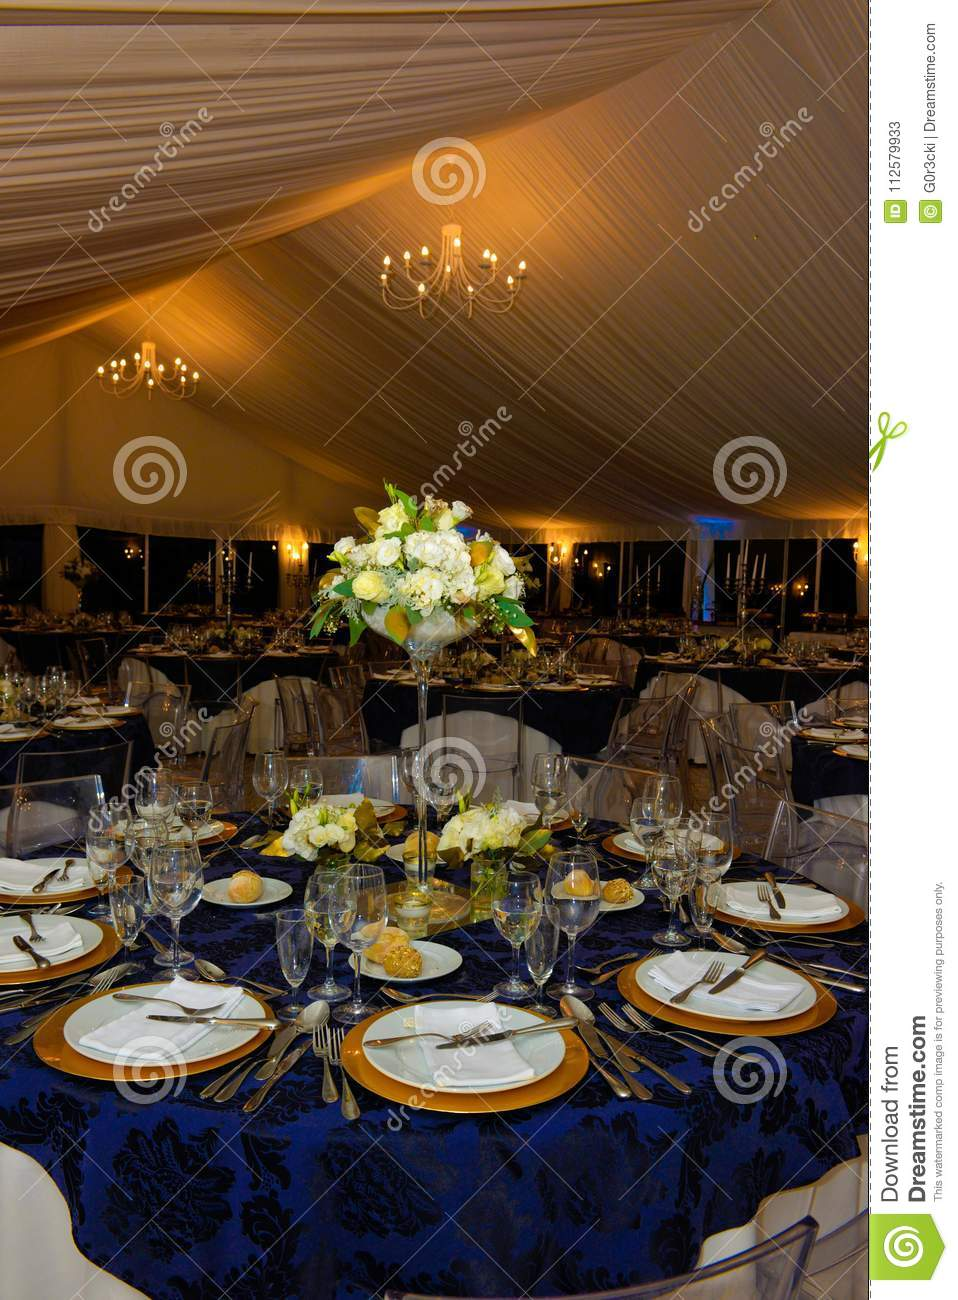 Dinner Party Banquet Tables Decoration Wedding Event Stock Image